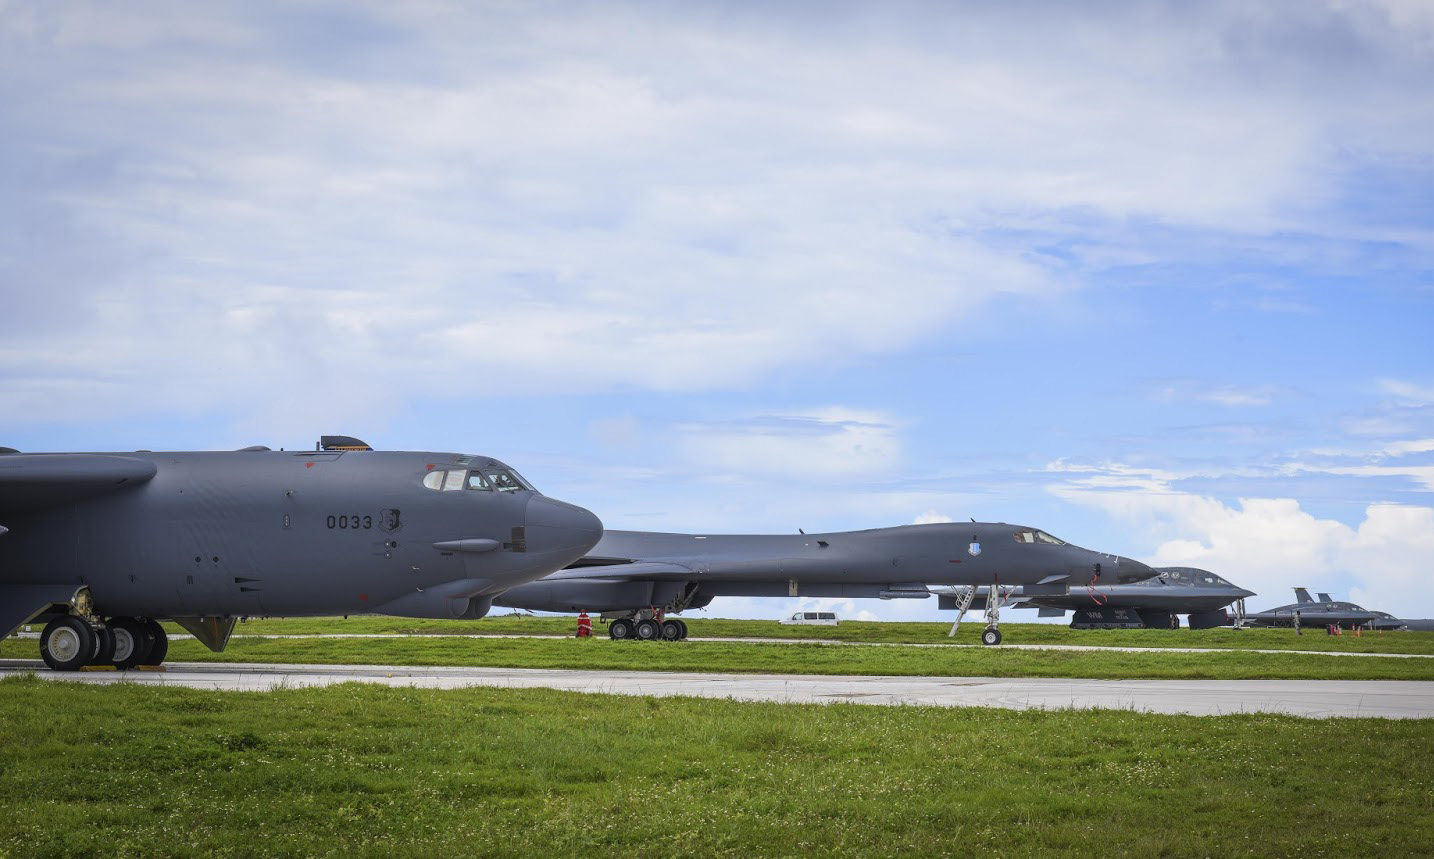 A B-52 Stratofortress, B-1 Lancer and B-2 Spirit are shown on the flight line at Andersen Air Force Base, Guam, Aug. 10, 2016. 2